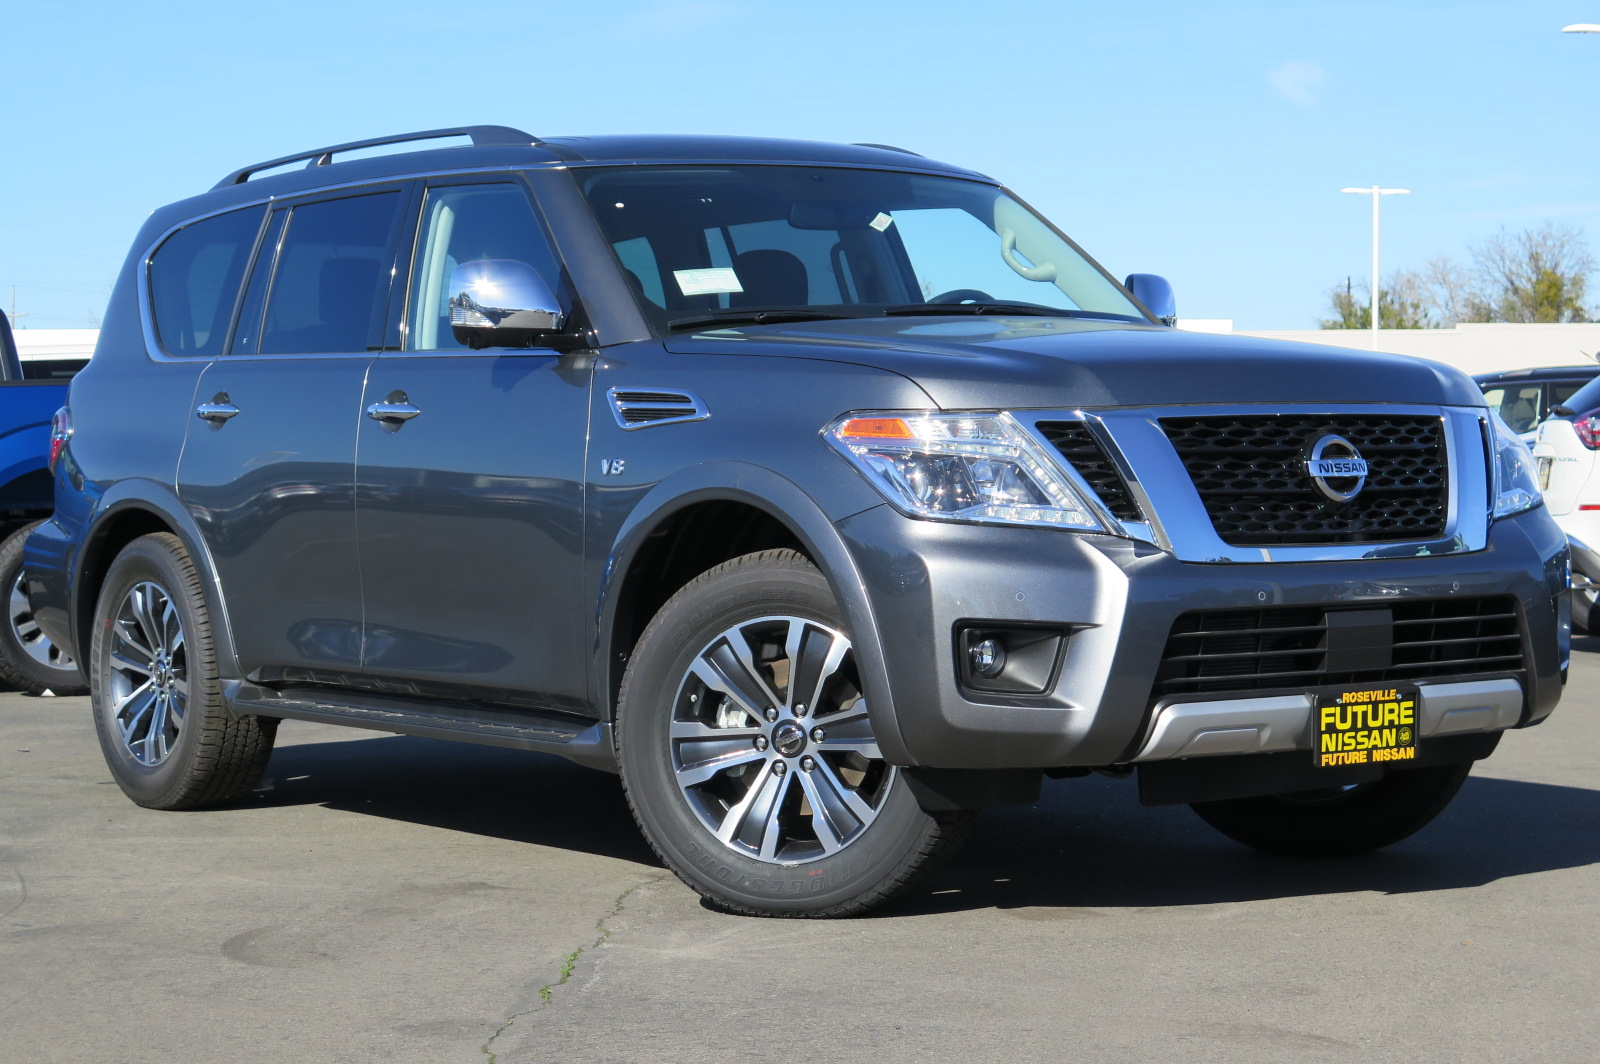 2017 nissan armada reviews ratings 2017 nissan armada review top speed uncategorized 2017. Black Bedroom Furniture Sets. Home Design Ideas